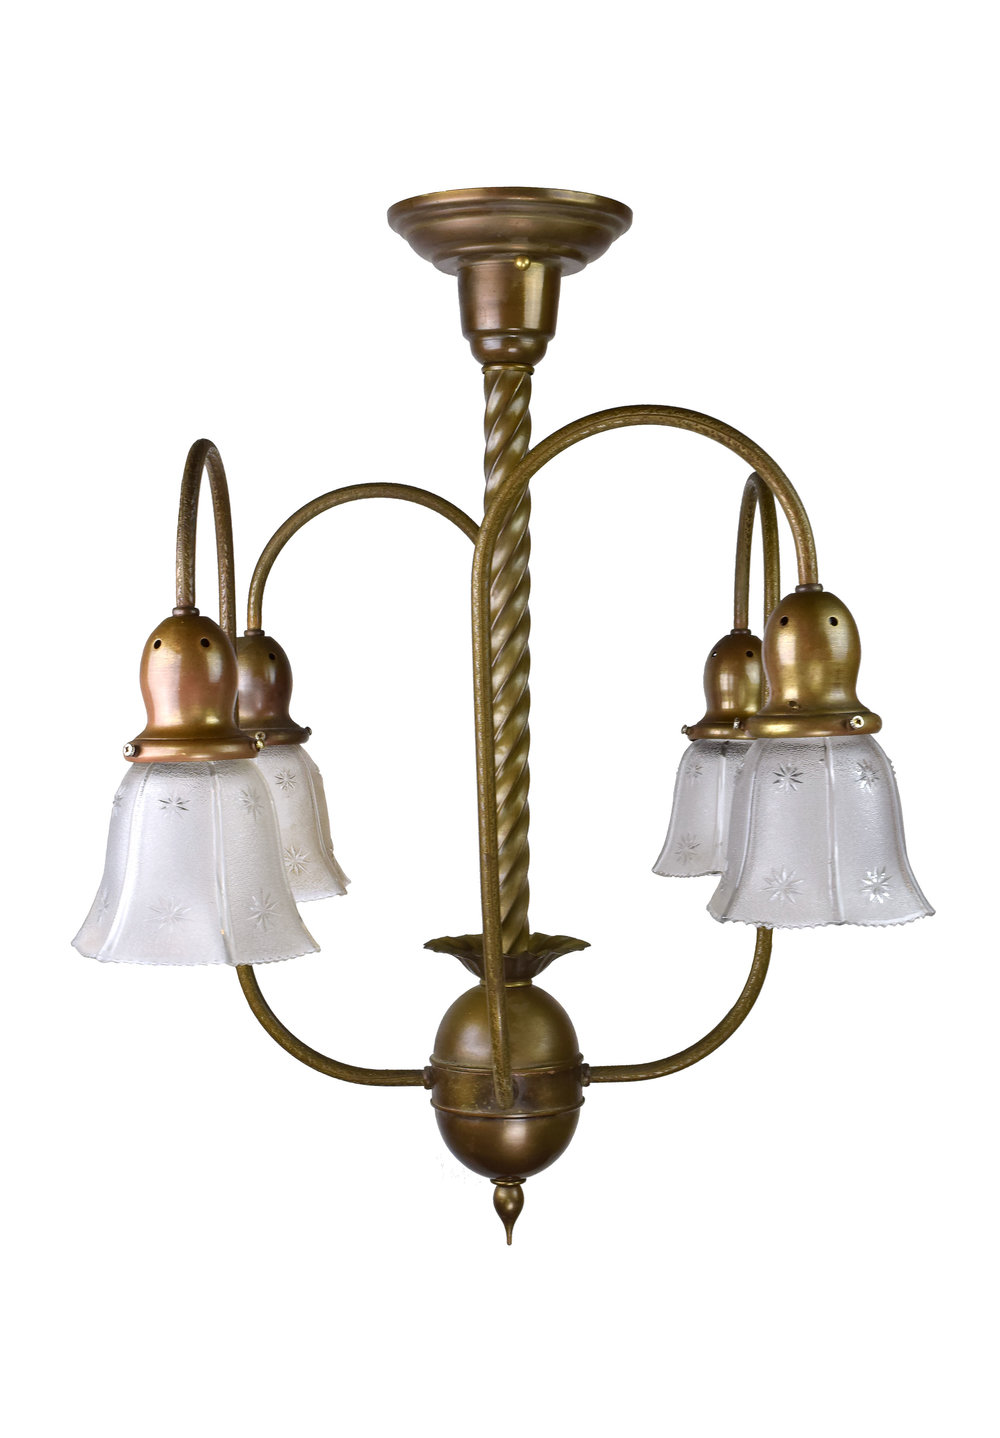 47004-brass-4-arm-chandelier-straight-on-view.jpg